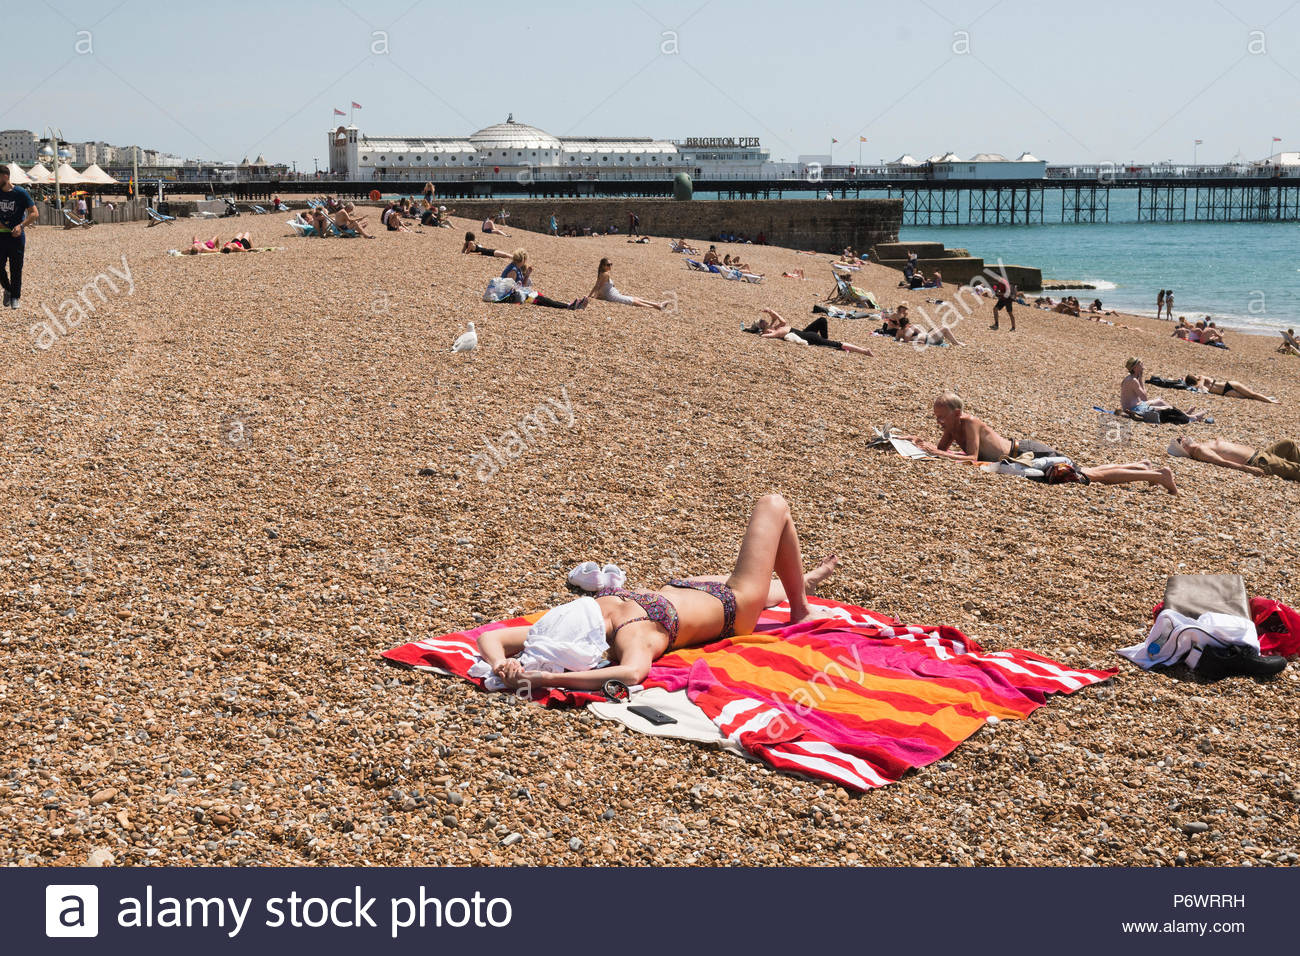 Brighton Beach, Sussex, UK. 3rd July 2018. UK heatwave continues as people still flock to the coast to soak up the hot weather while it lasts as temperatures still register into the late twenties degree centigrade. - Stock Image